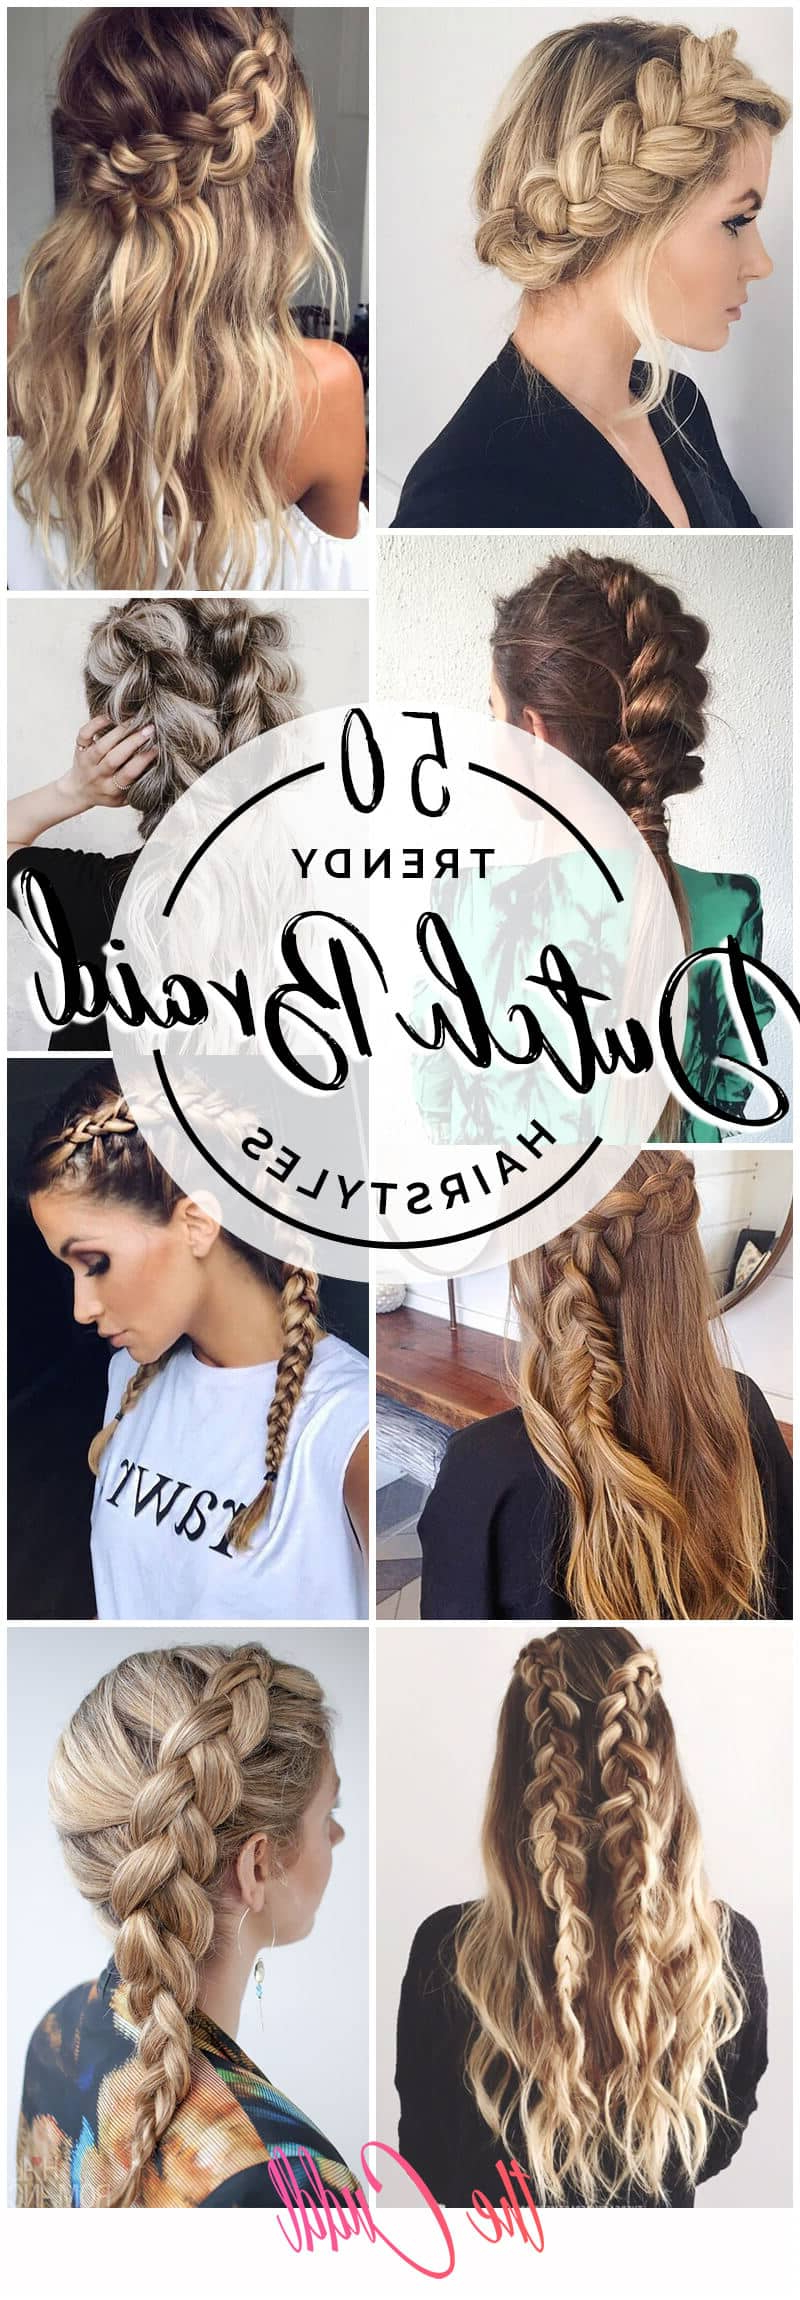 50 Trendy Dutch Braids Hairstyle Ideas To Keep You Cool In 2019 Intended For Latest Medieval Crown Braided Hairstyles (View 4 of 20)